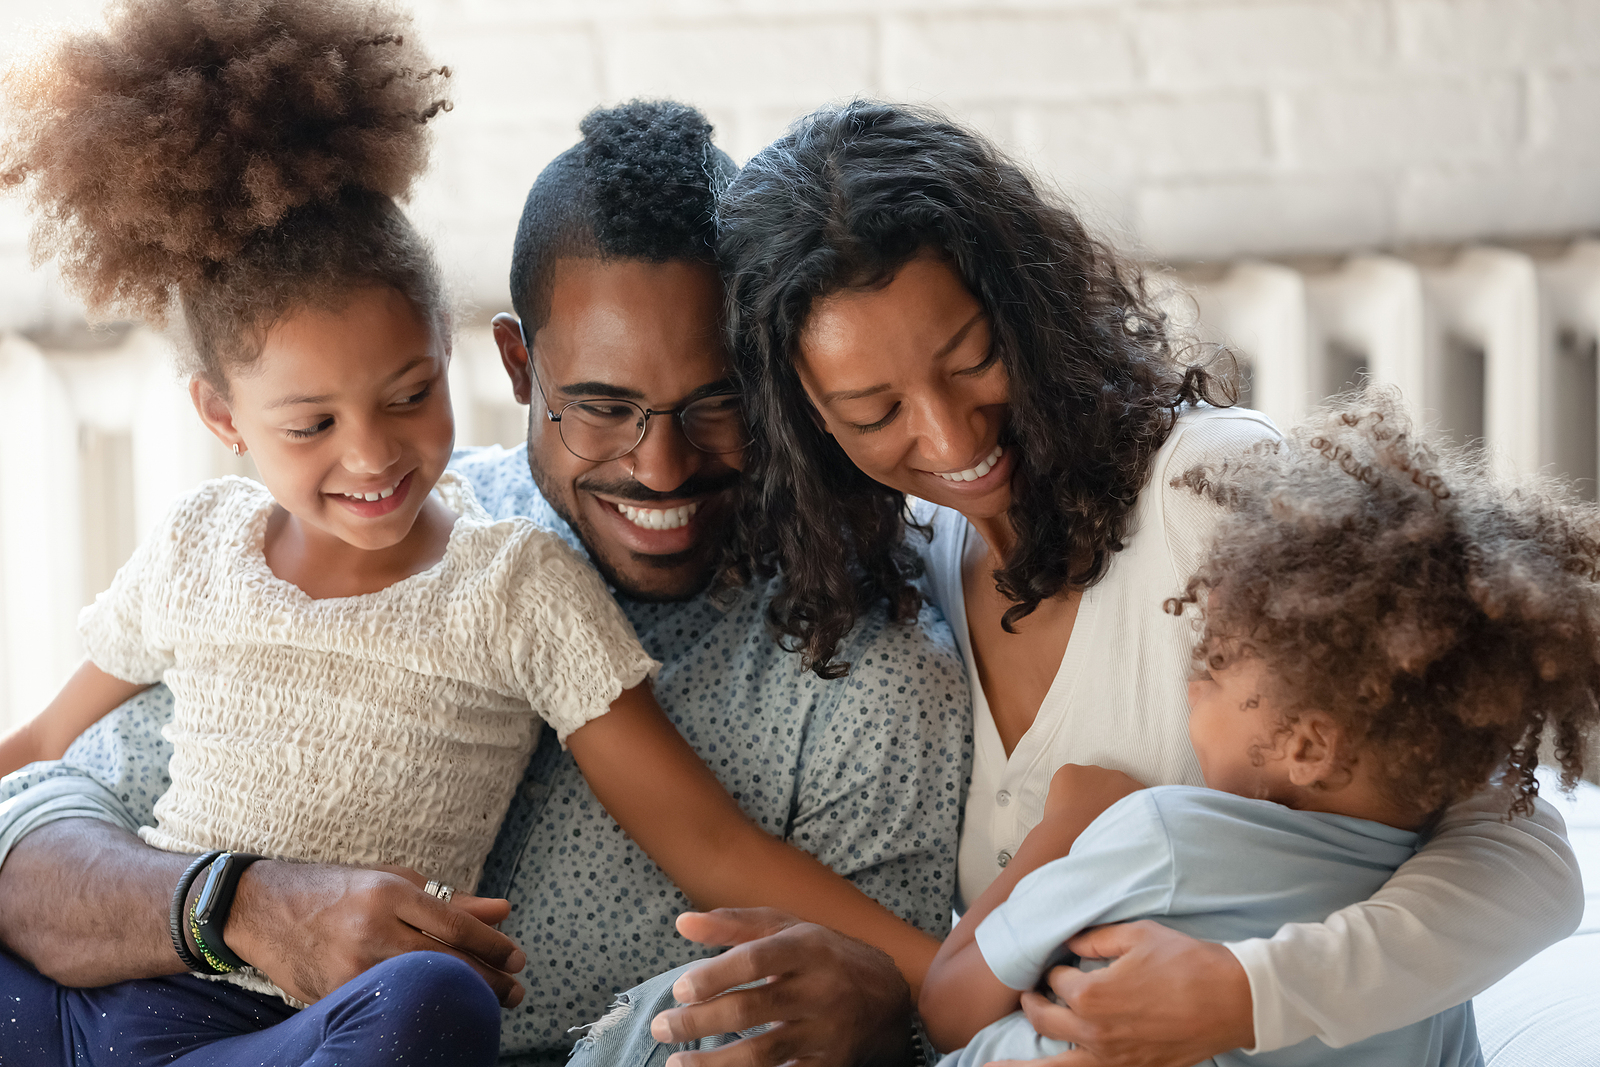 Family enjoying time together. Trauma takes many forms including intergenerational trauma. Get support with this in PTSD treatment and trauma therapy in Detroit, MI. Begin overcoming perfectionism and childhood trauma, anxiety and trauma, or depression and trauma soon!